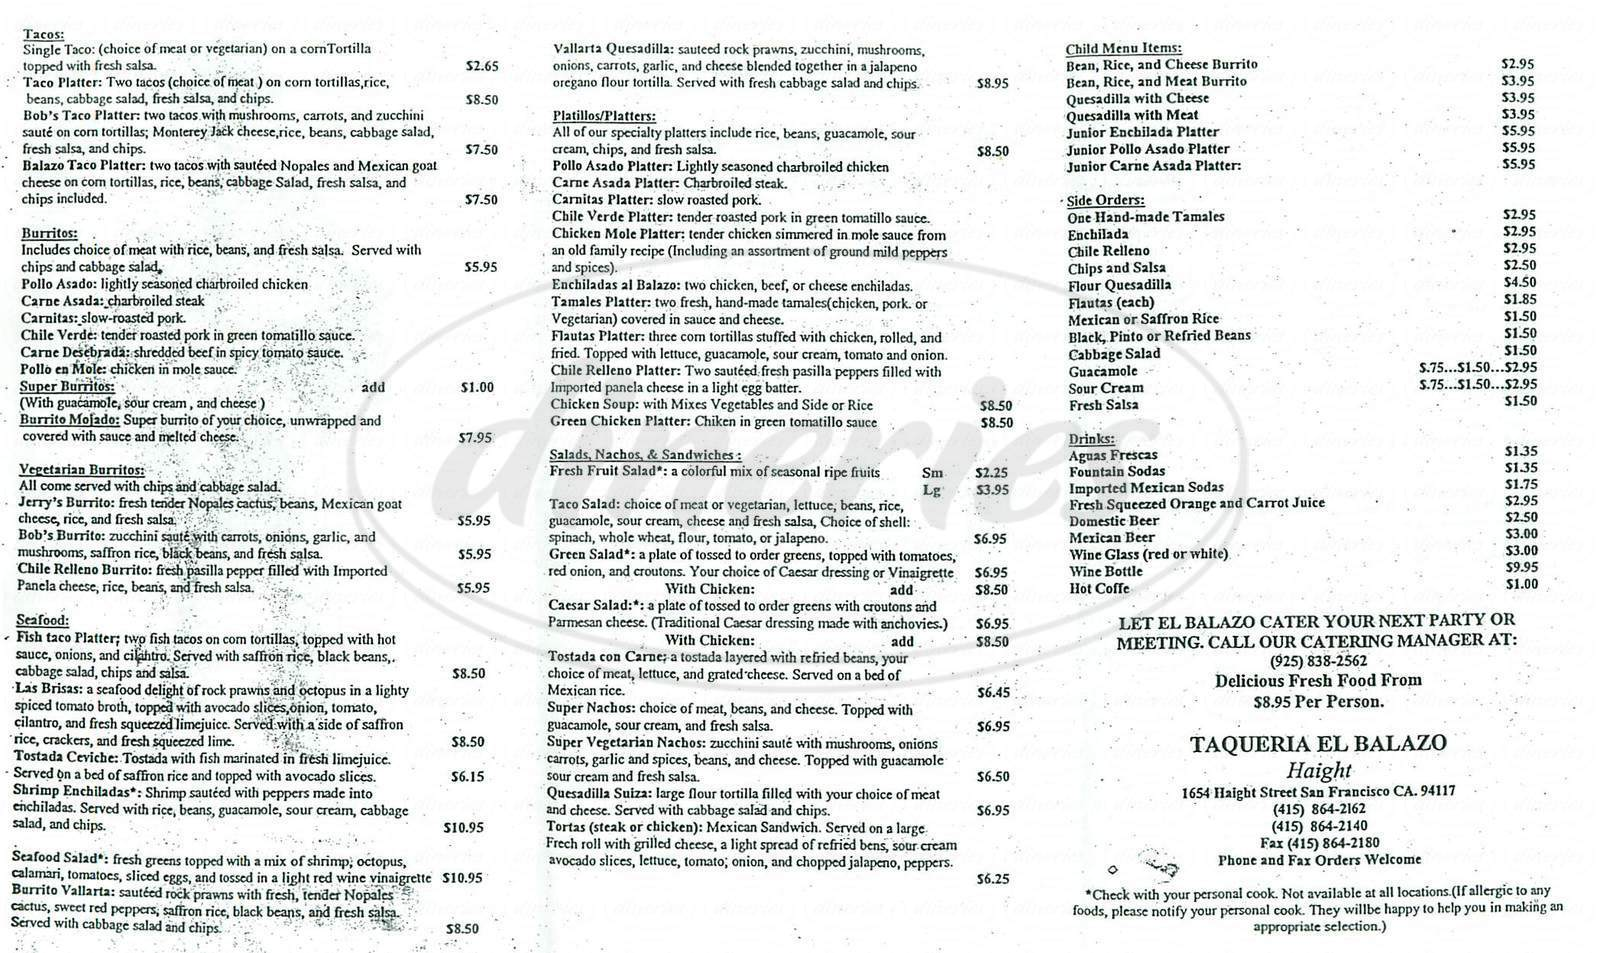 menu for El Balazo